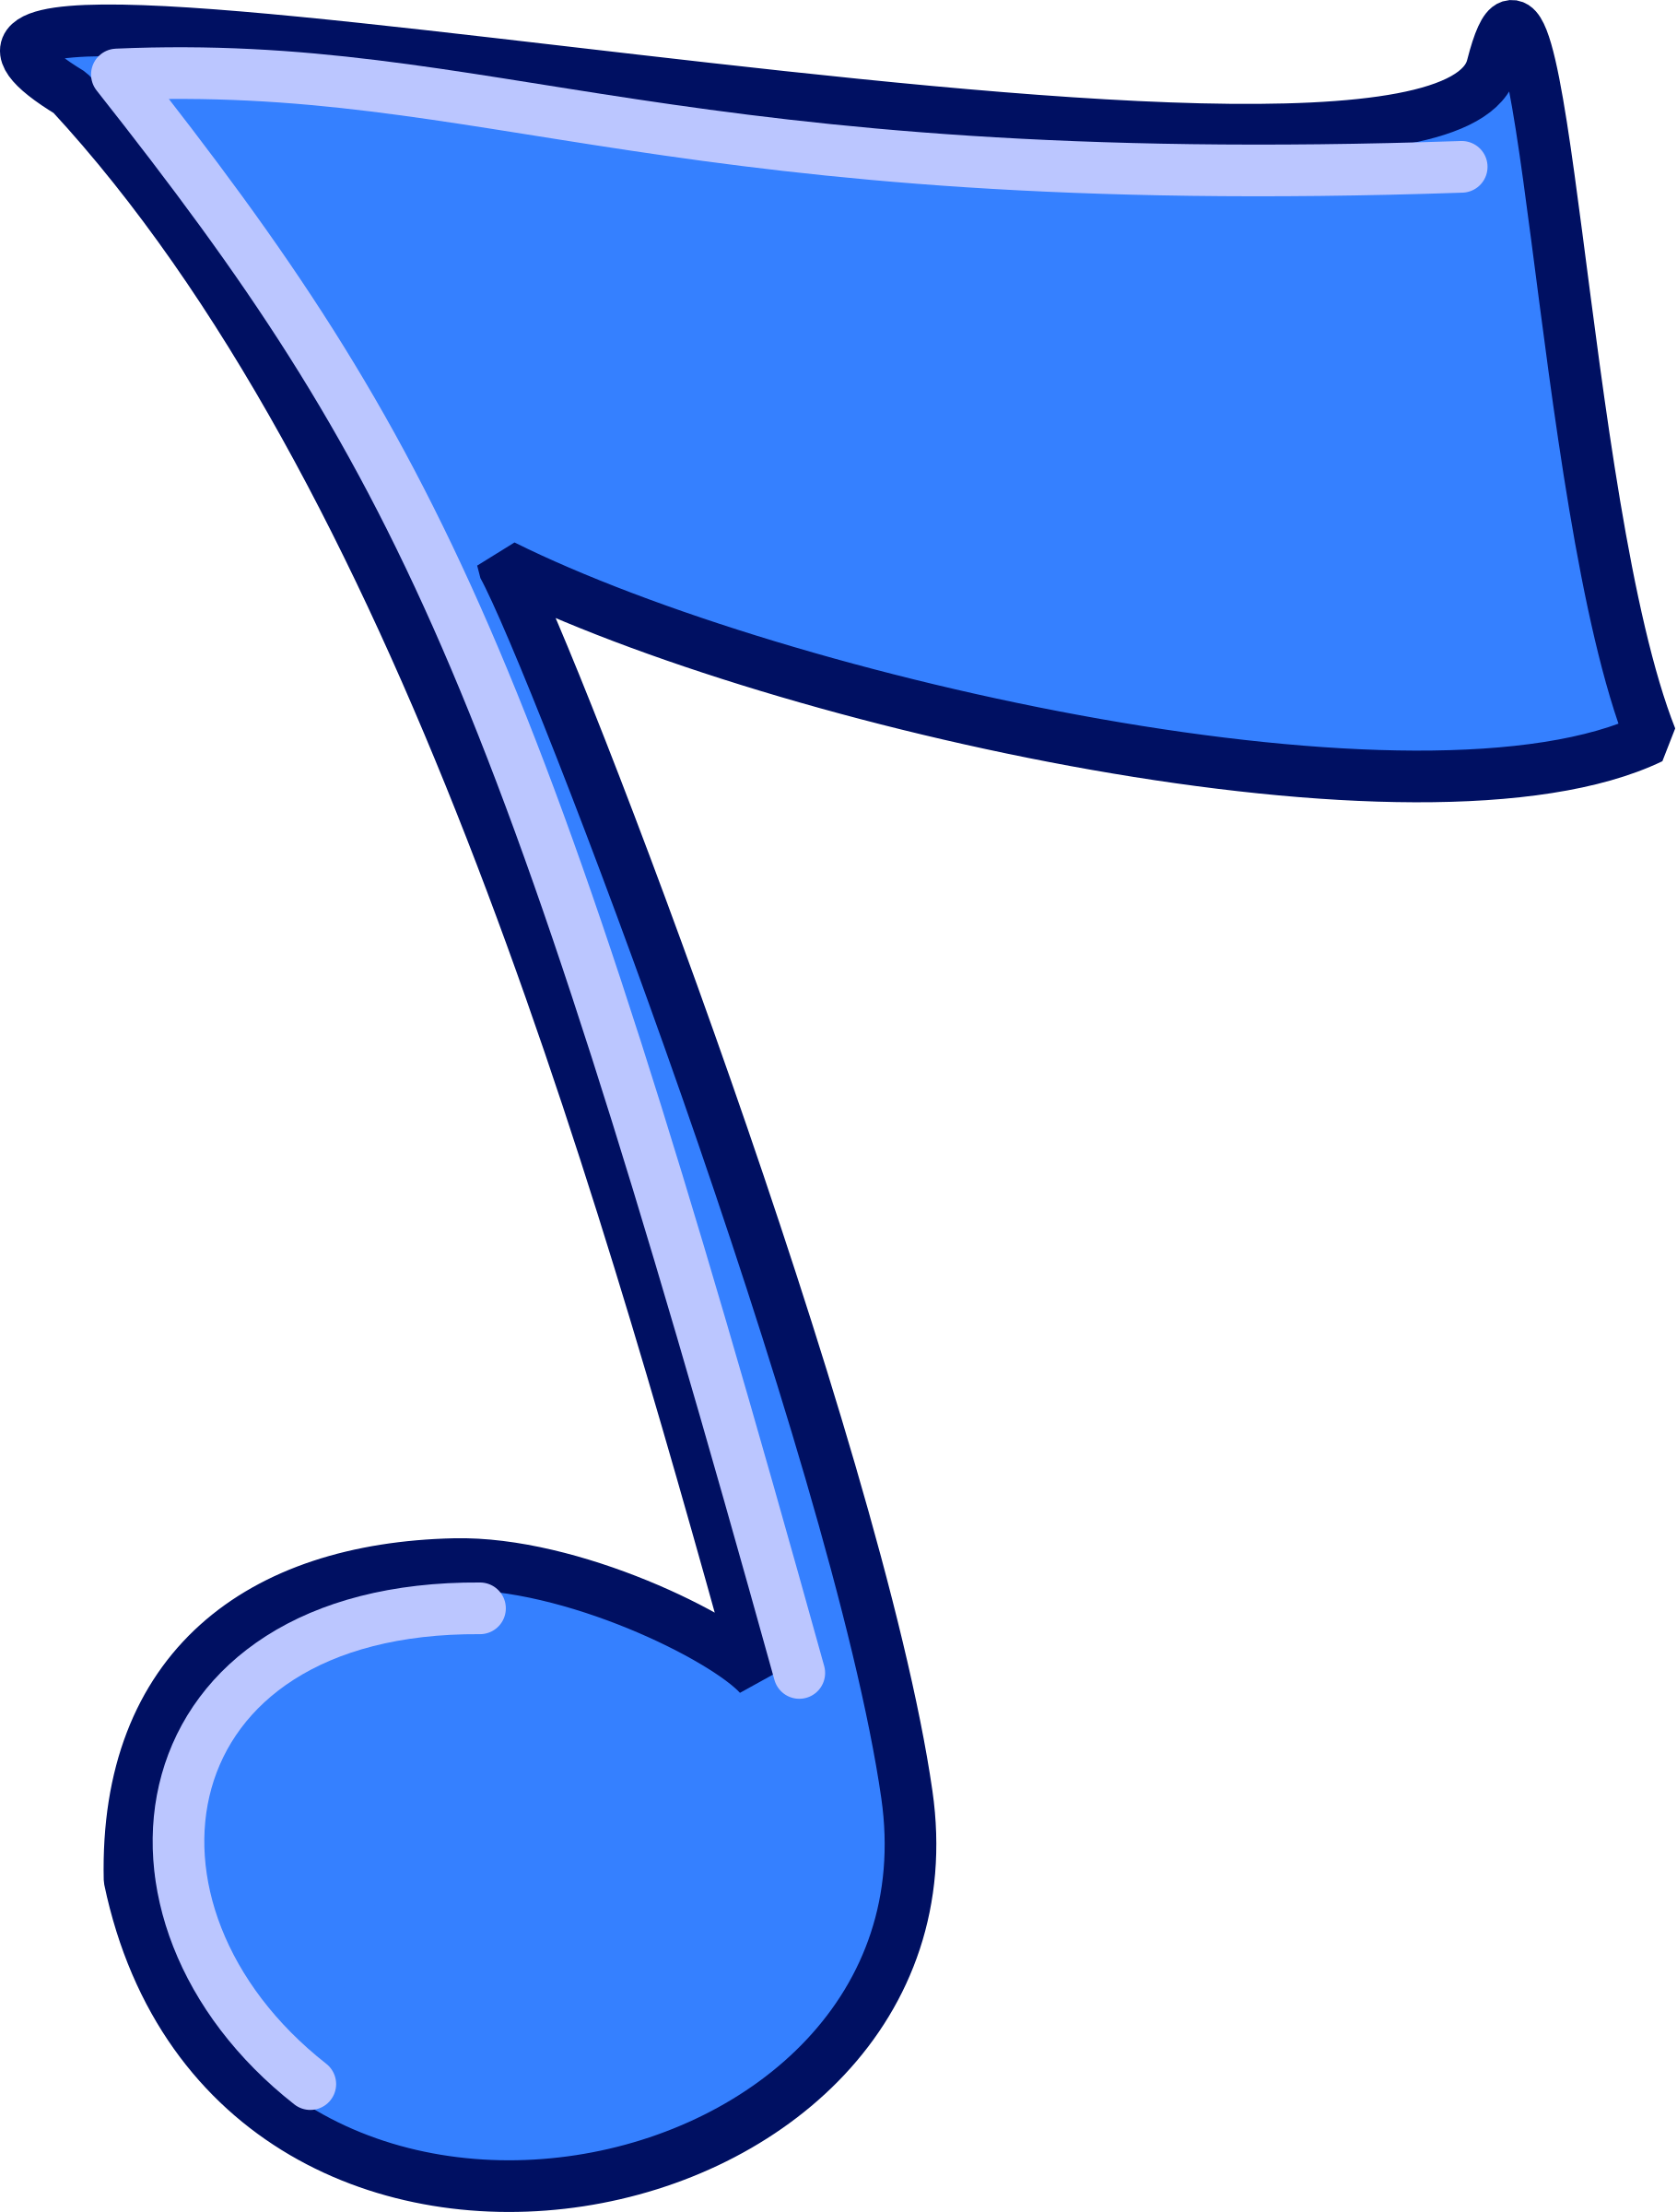 Notes clipart png. Free music at getdrawings